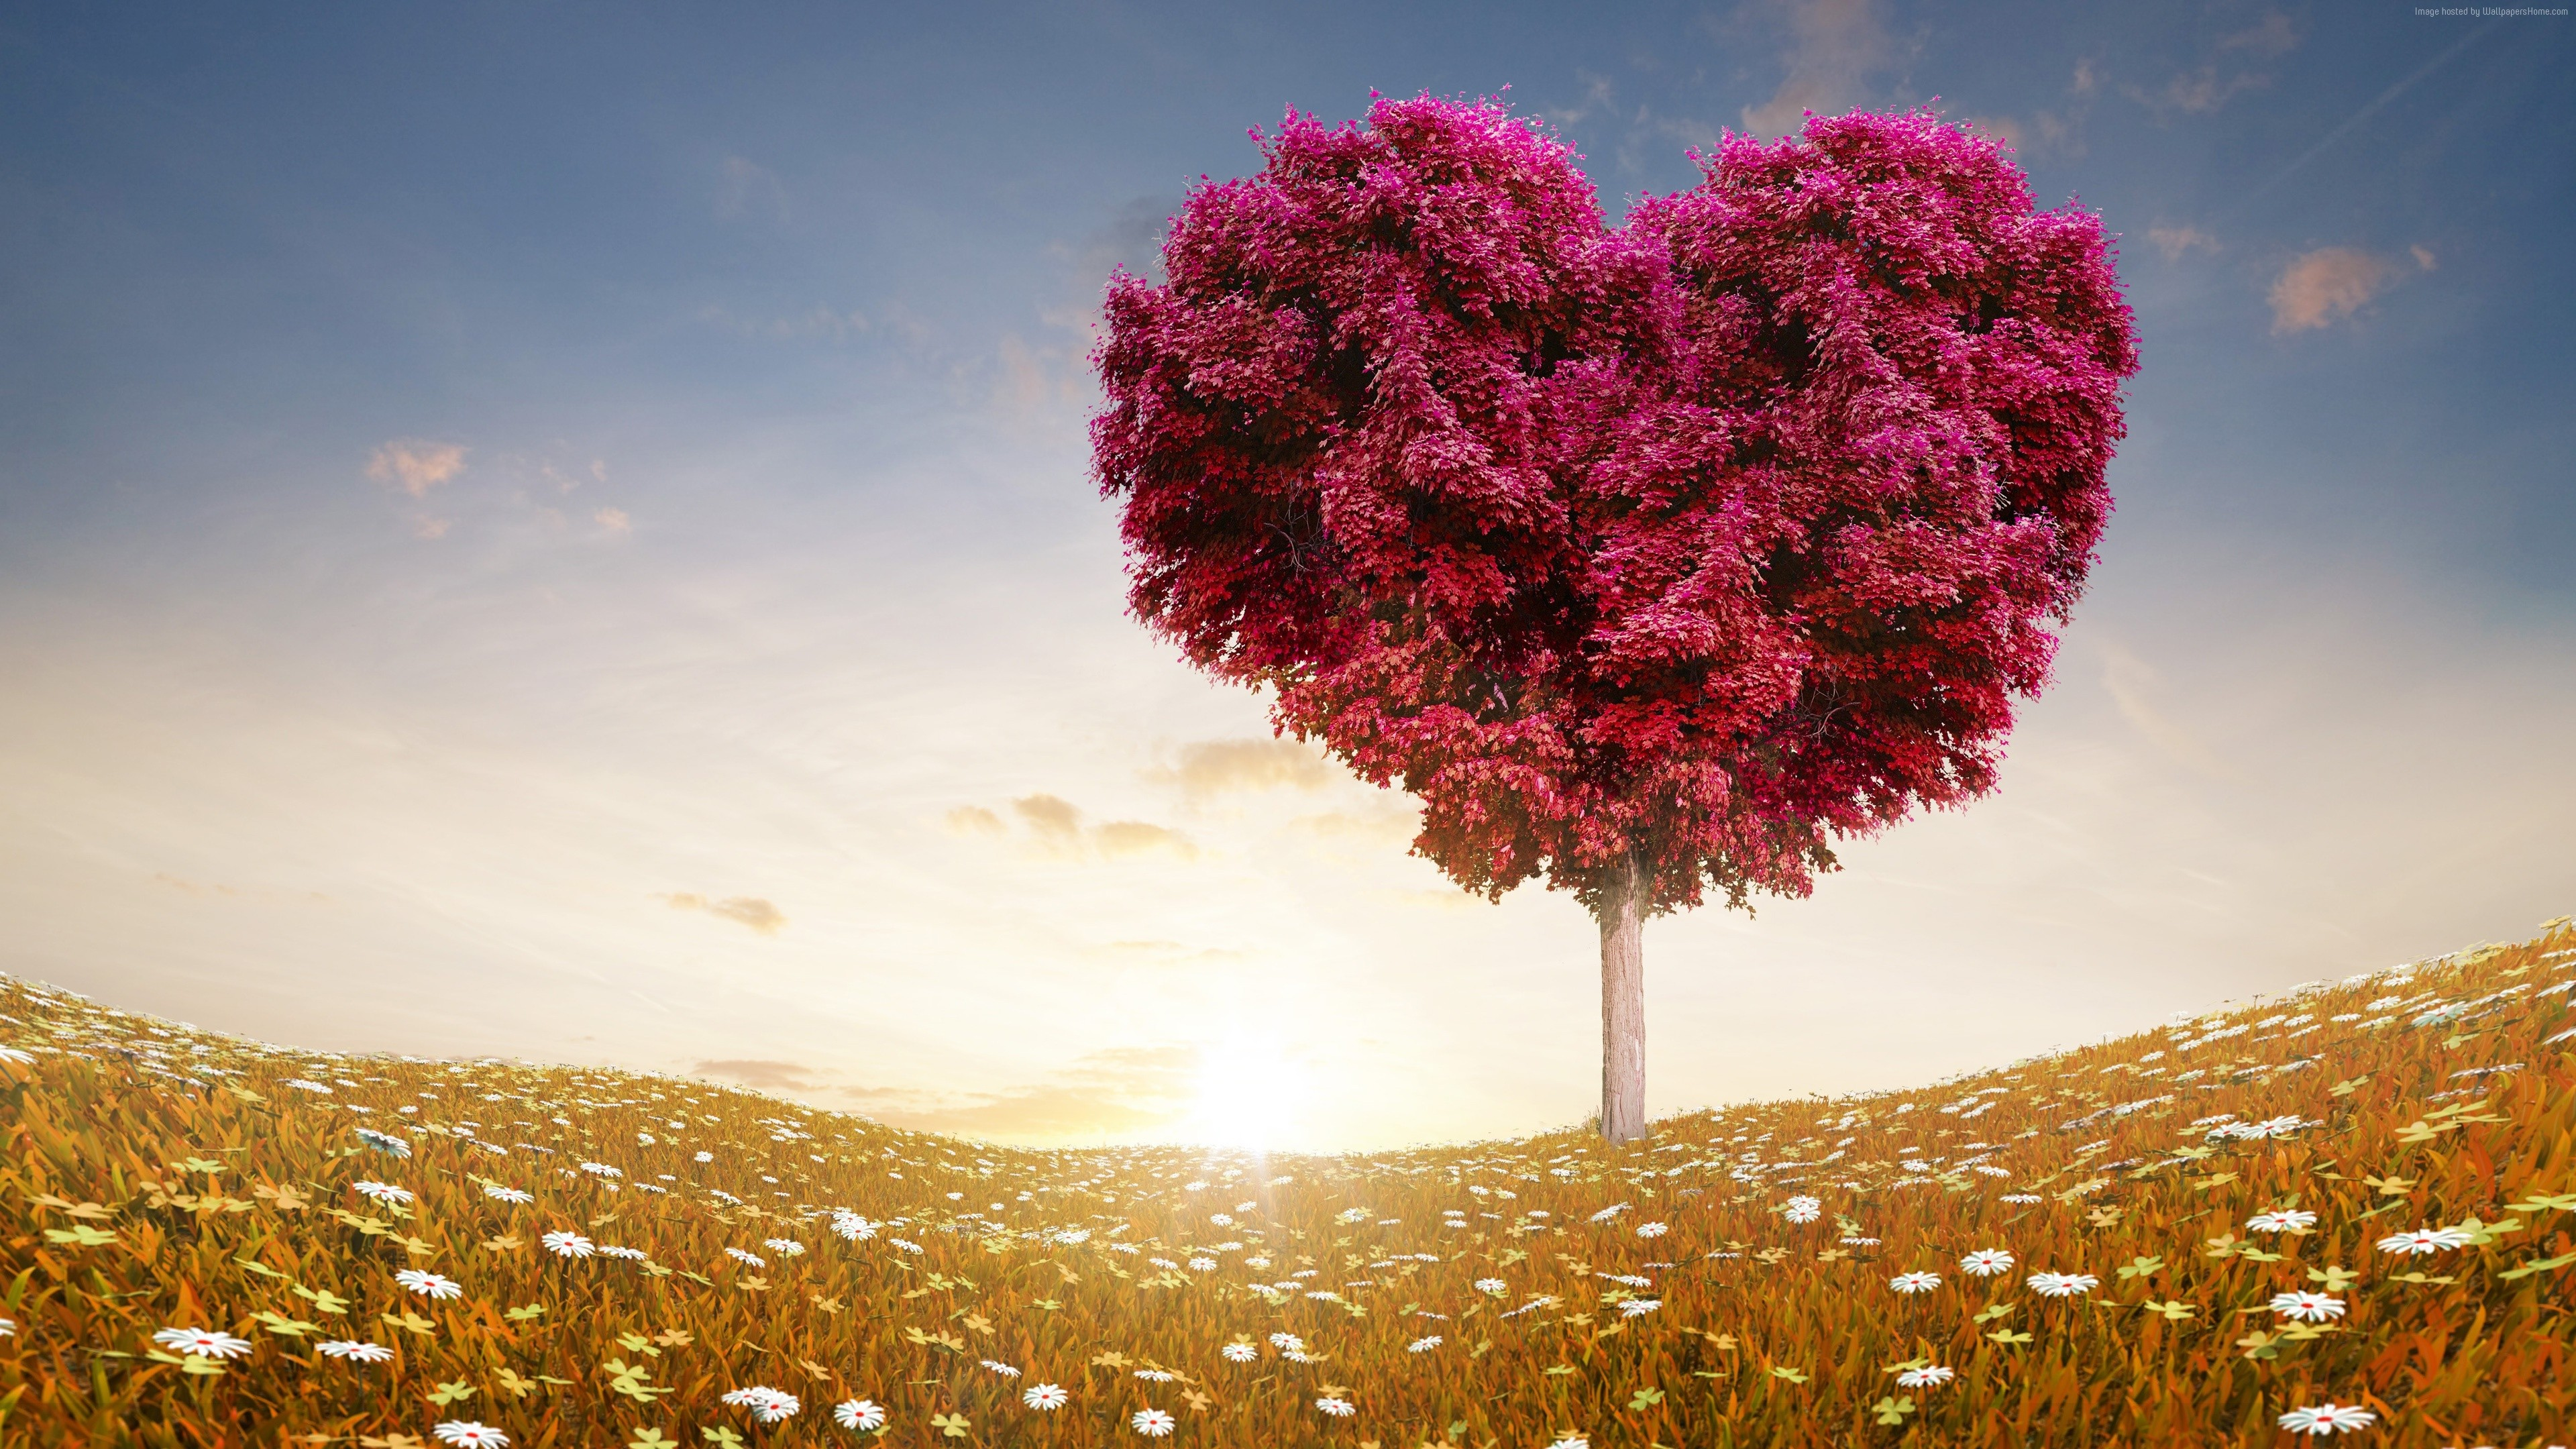 Stock Images love image, heart, 4k, tree, Stock Images